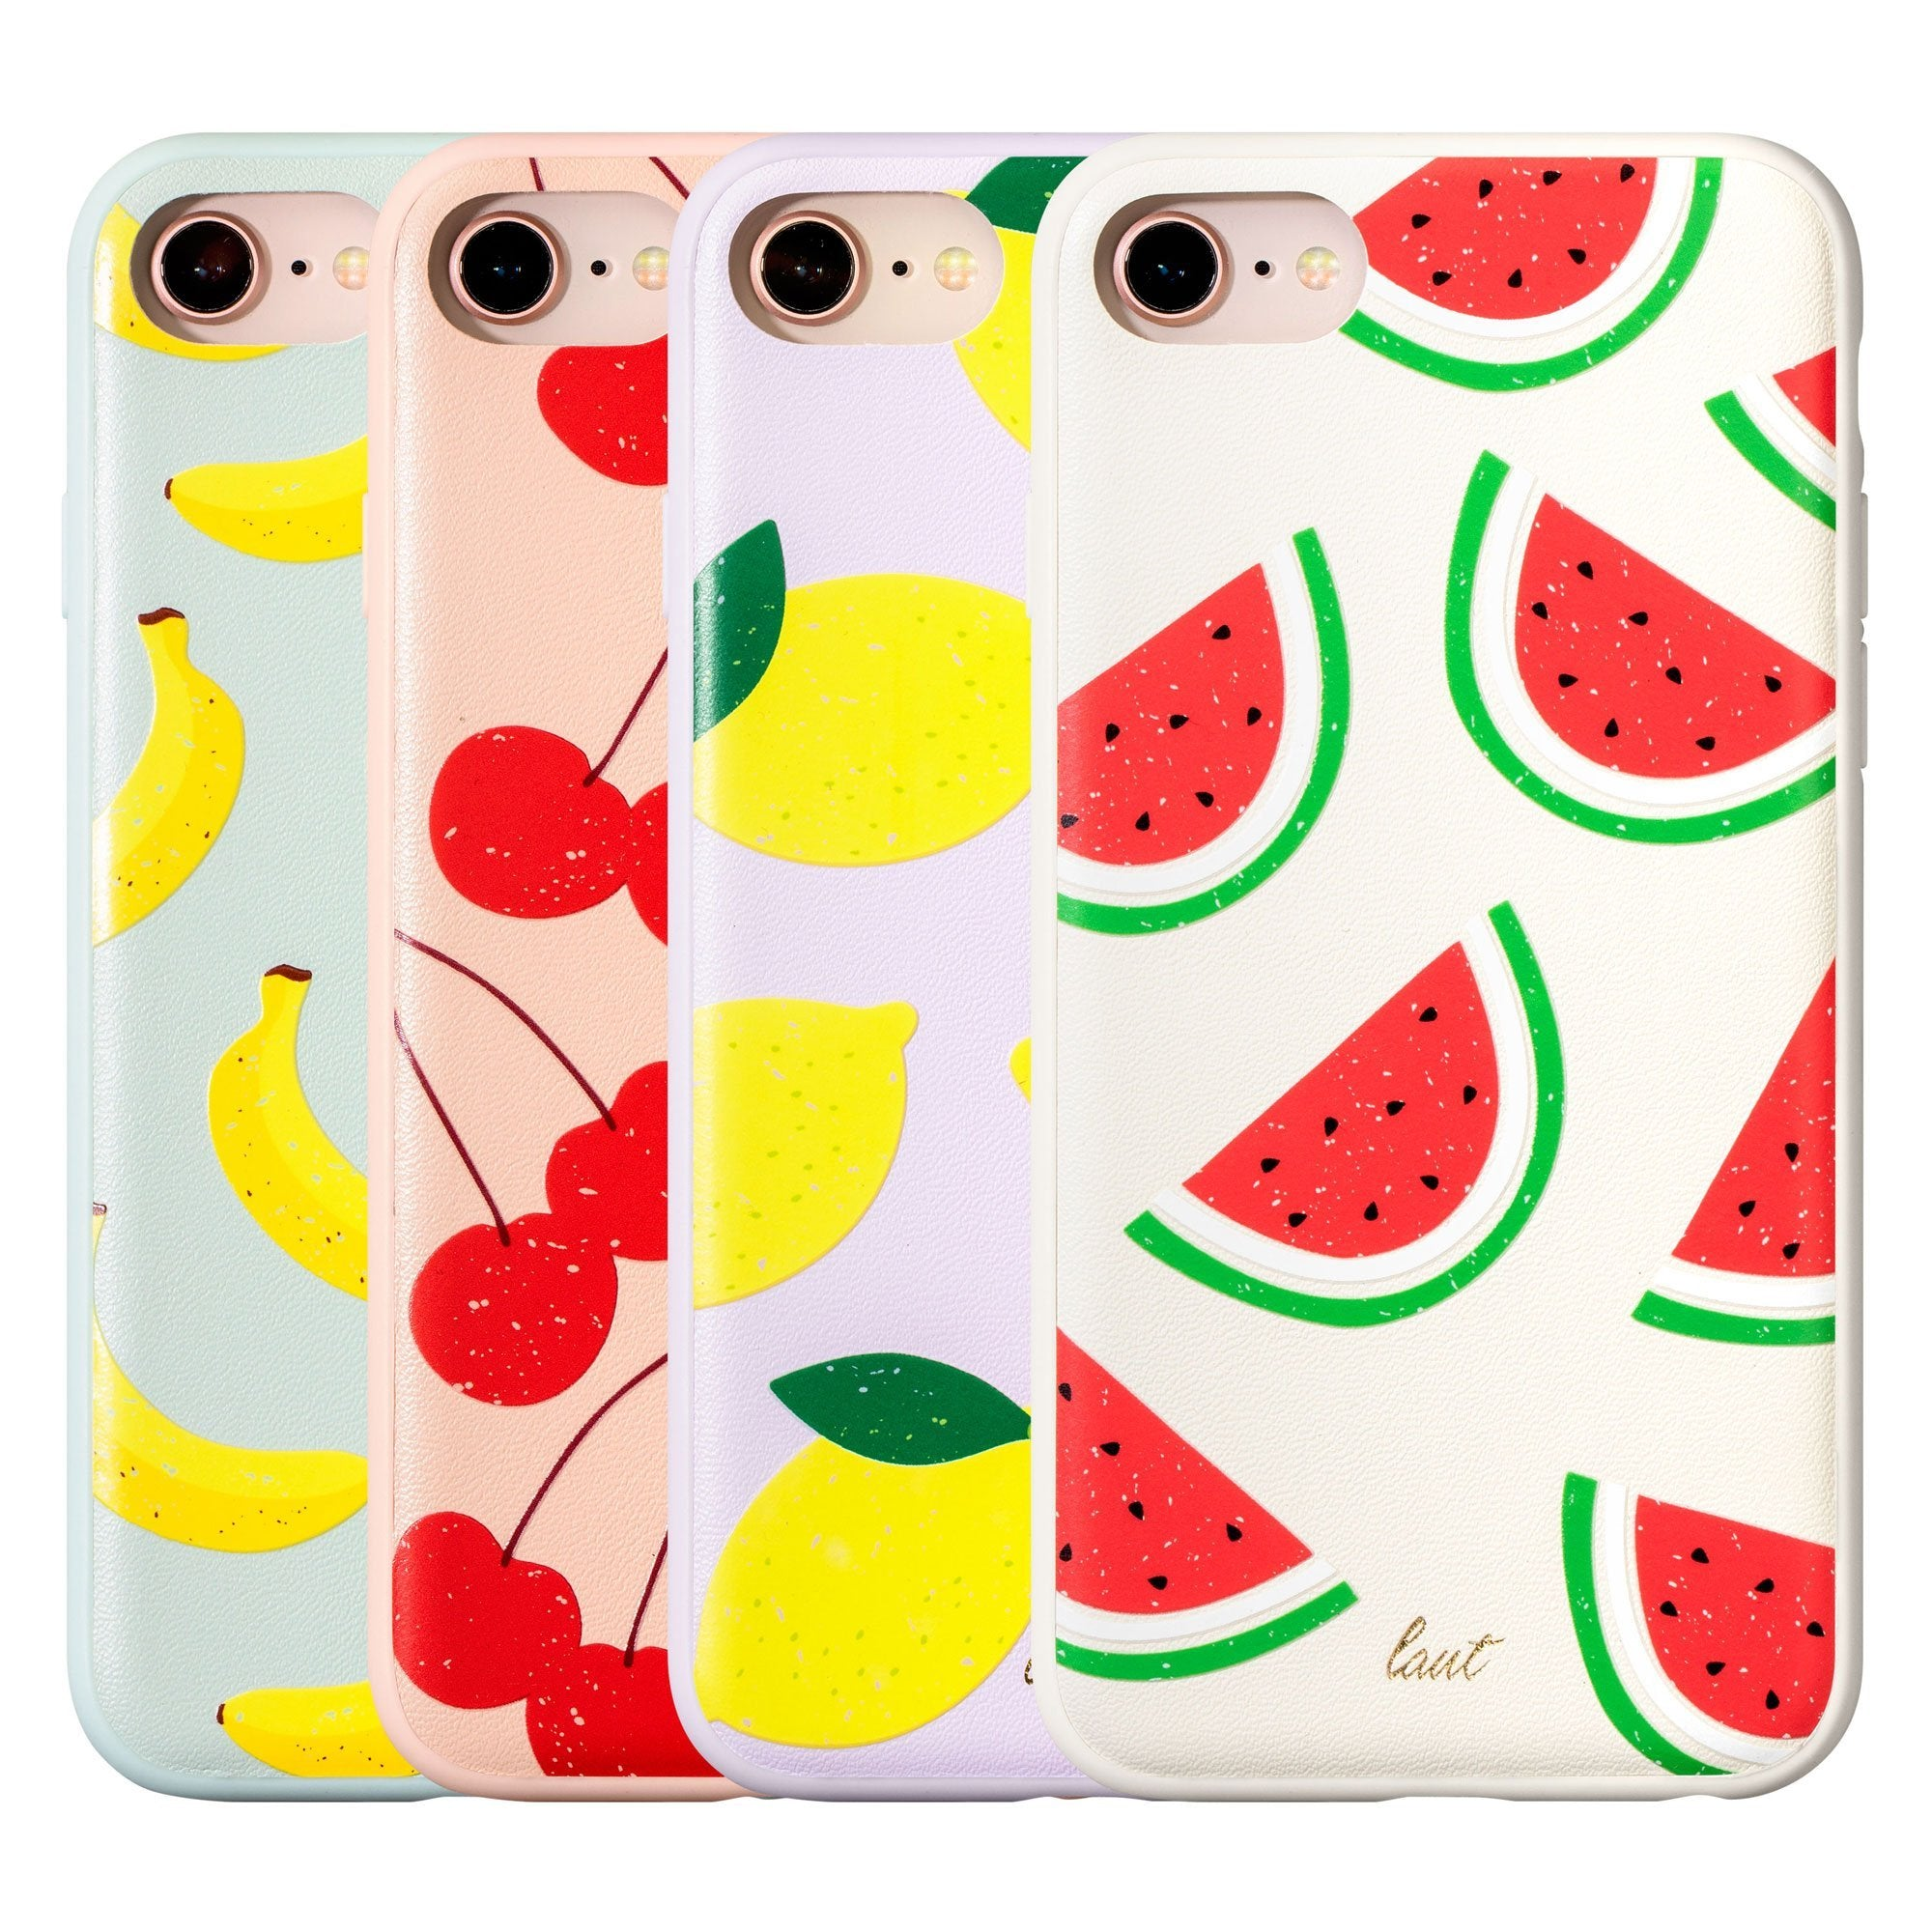 TUTTI FRUTTI case for iPhone SE 2020 / iPhone 8/7/6